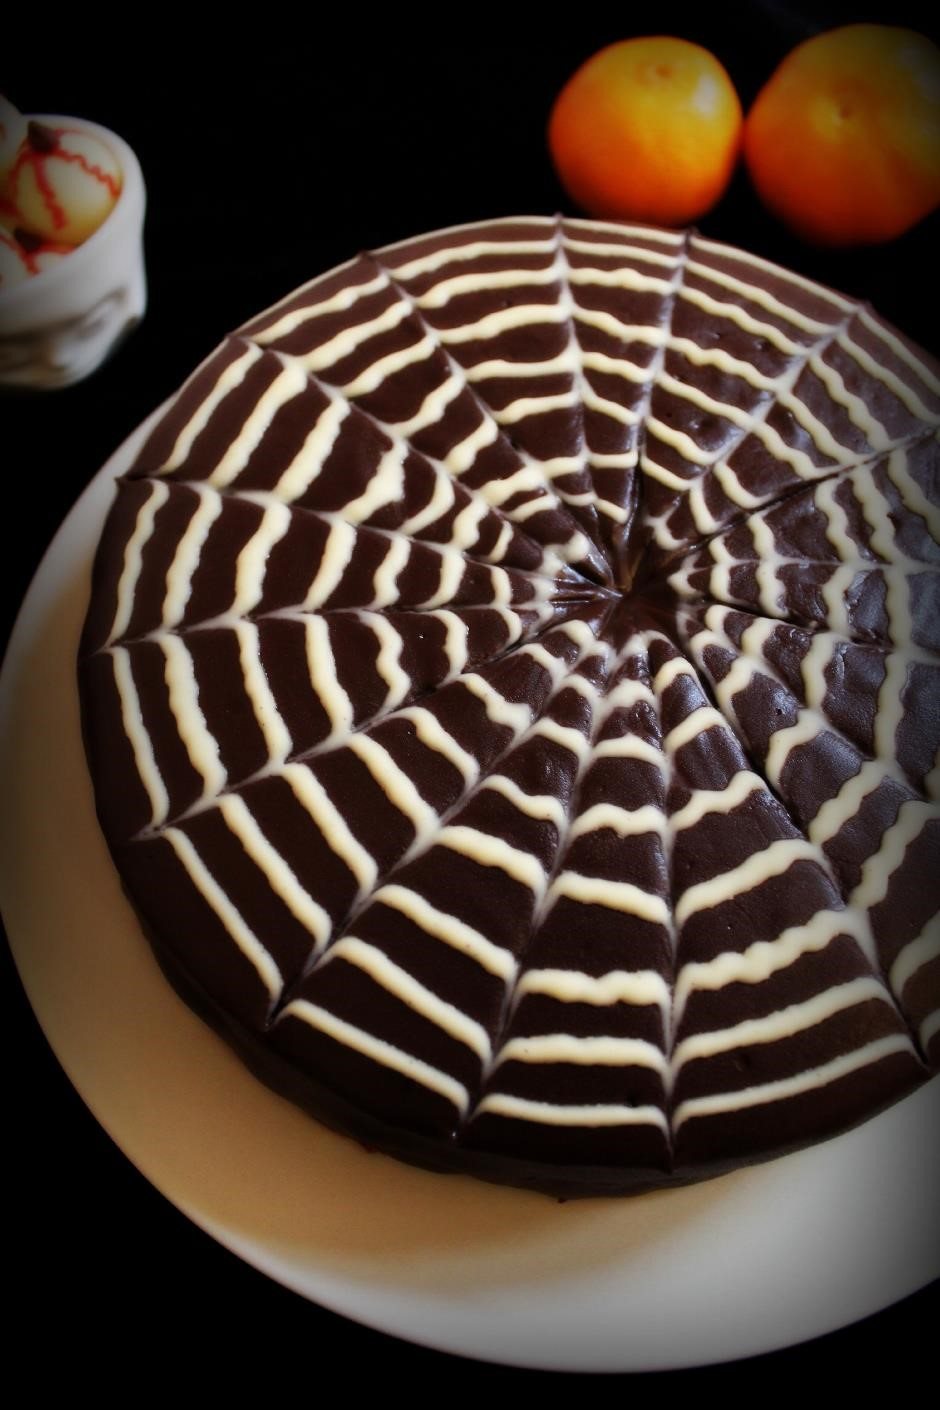 Spider Web Designs For Cakes